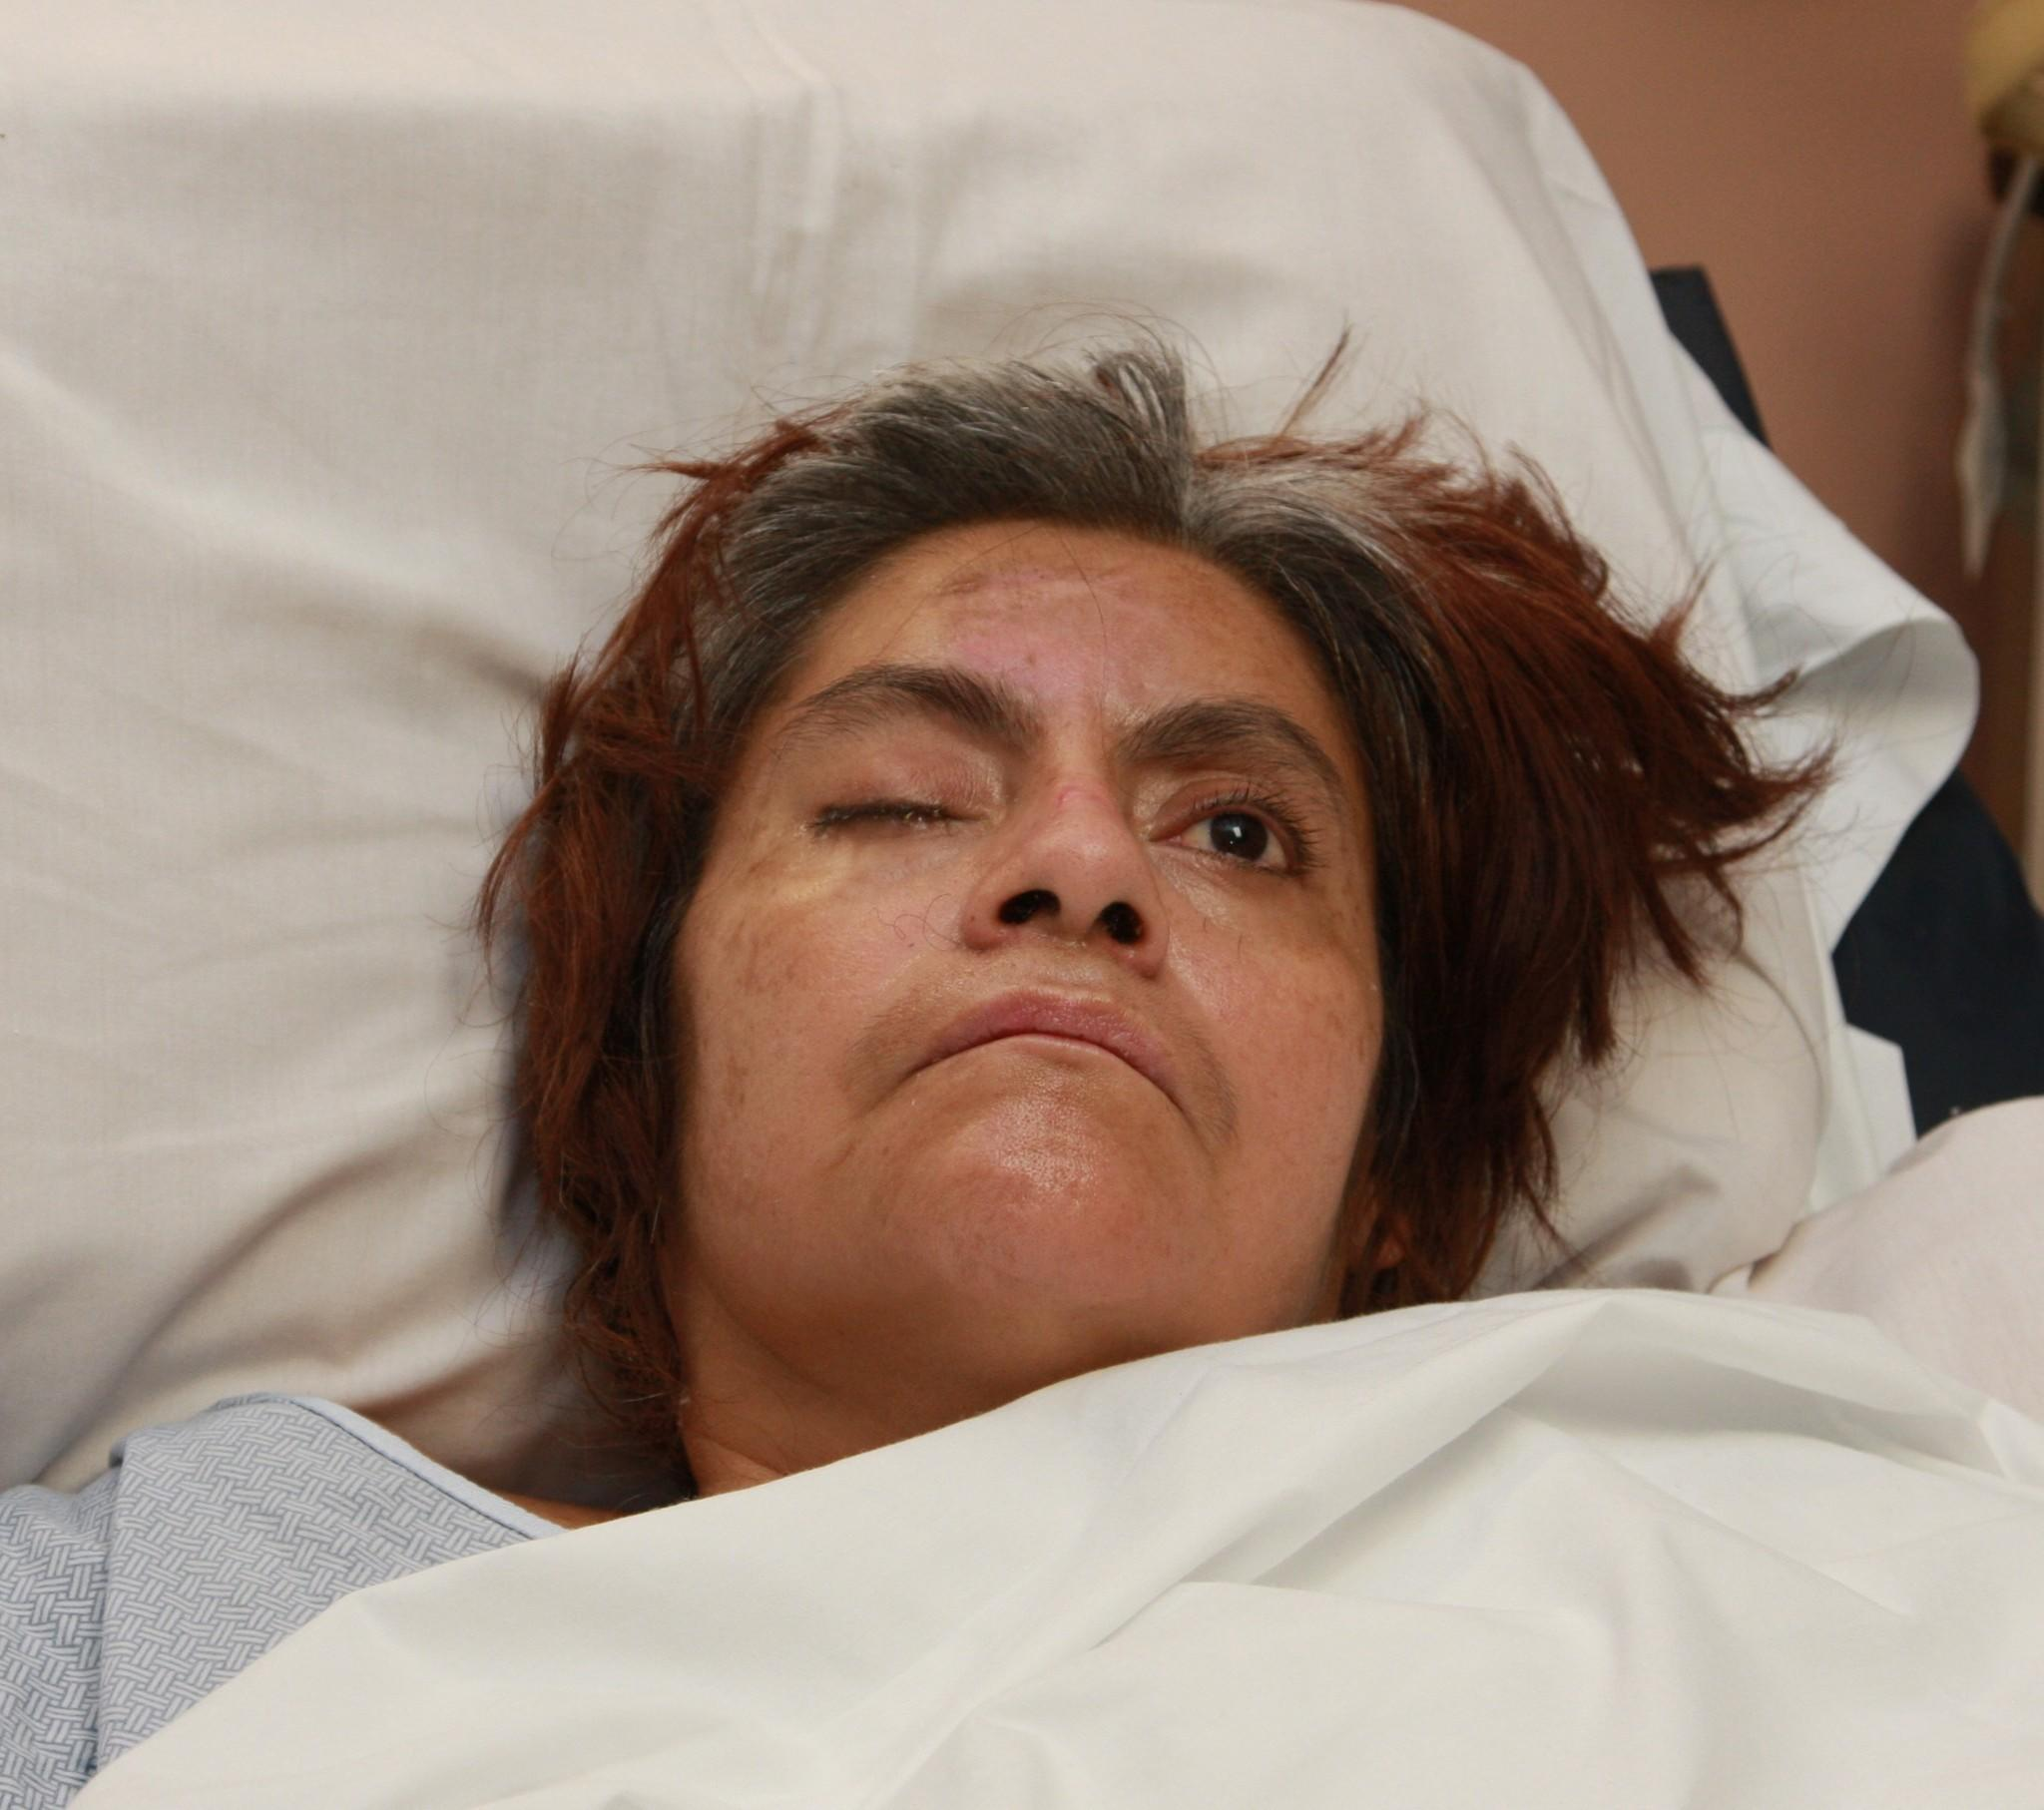 Santa Ana police are seeking the public's help in identifying this woman, who was struck by a vehicle on Oct. 15.